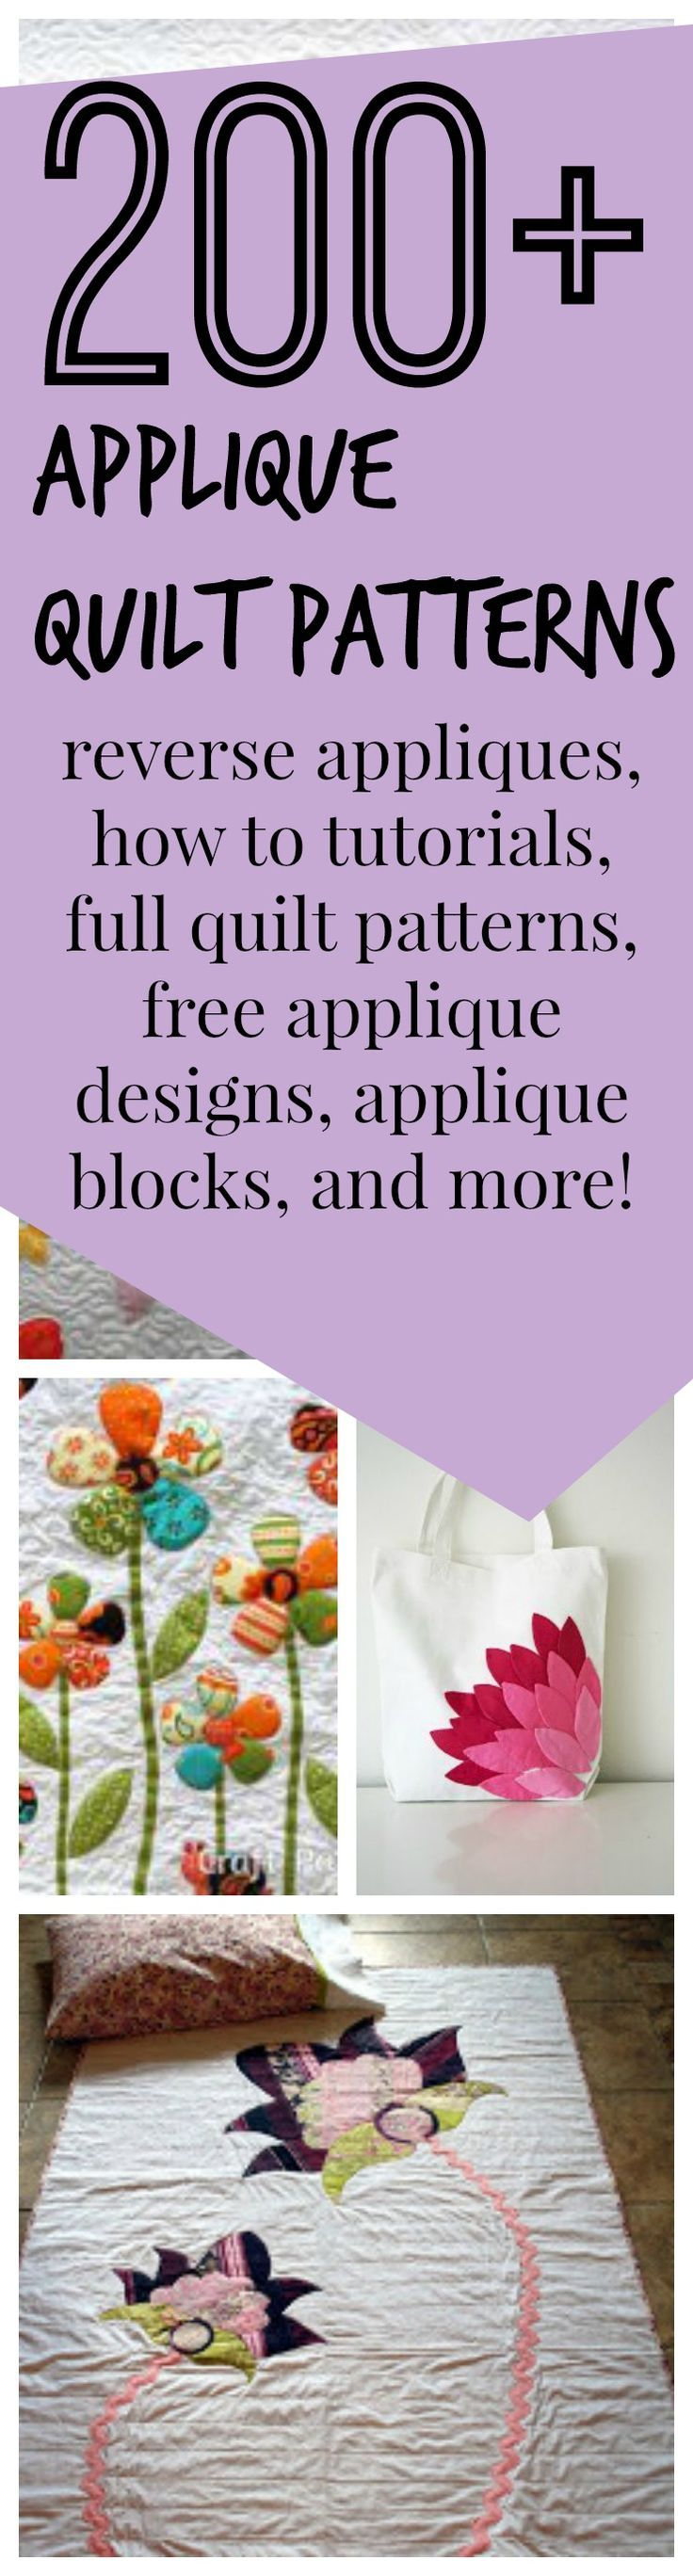 More than 200 Applique Quilt patterns which are free.